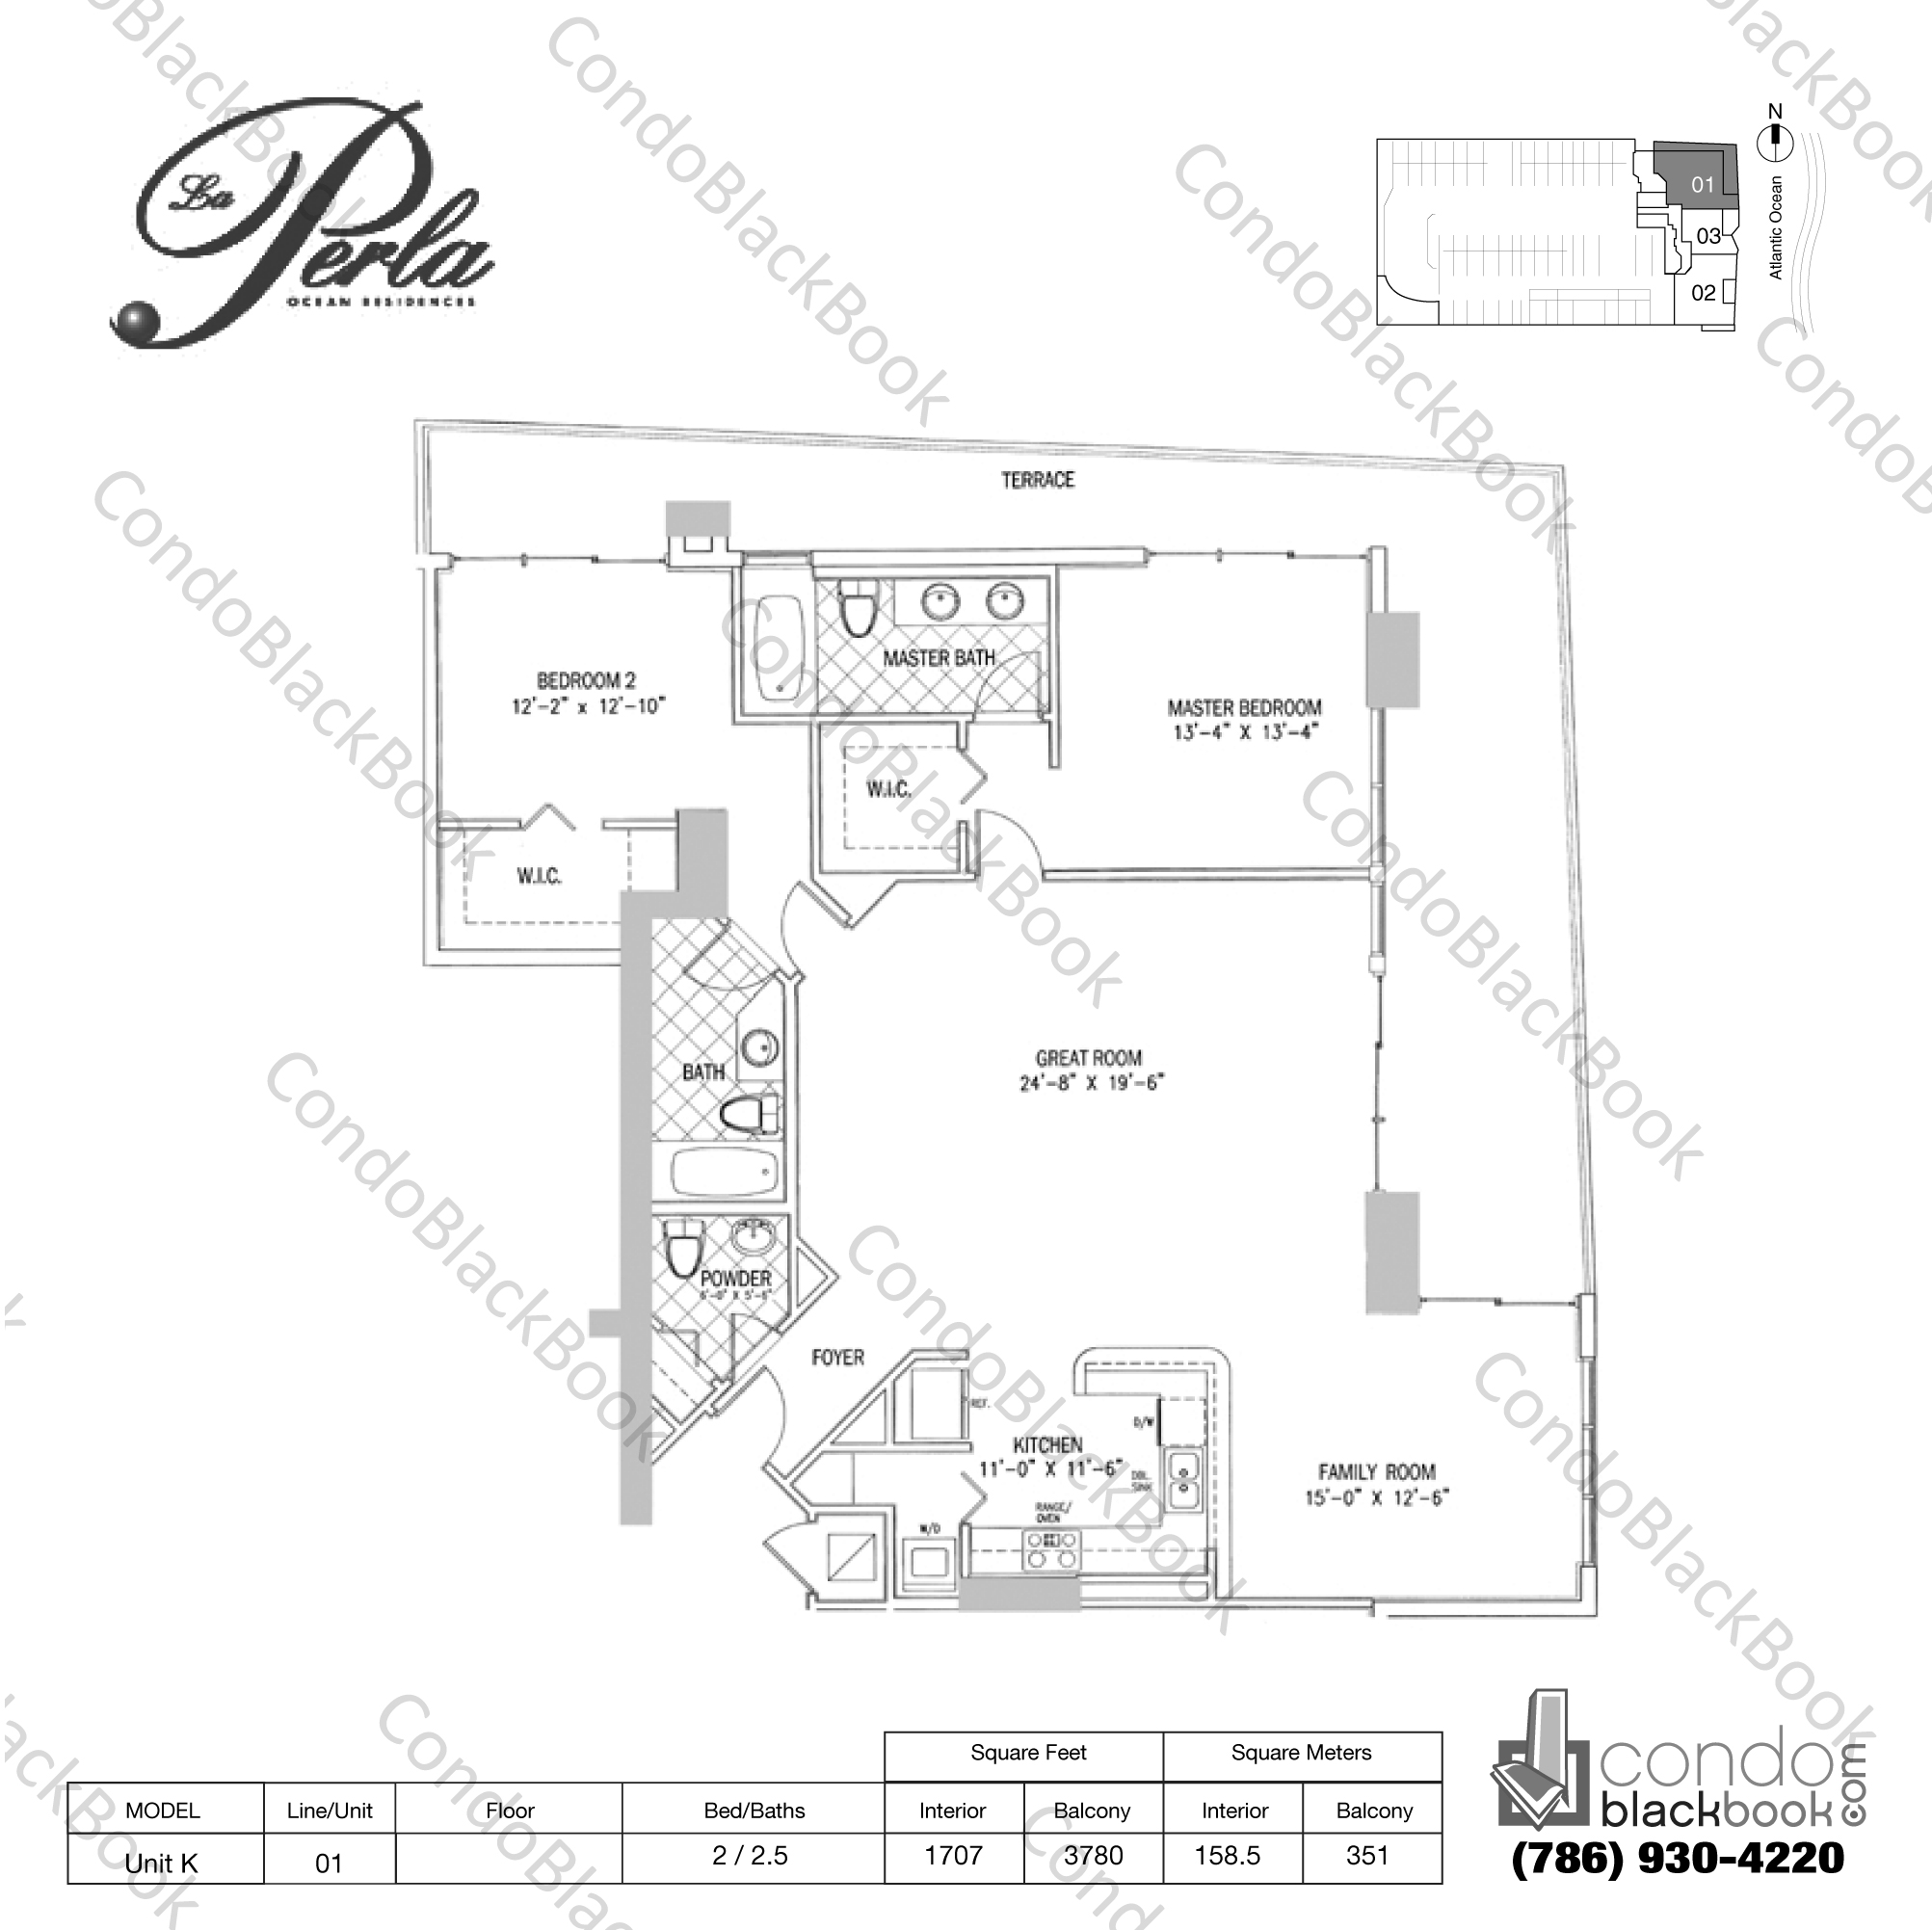 Floor plan for La Perla Sunny Isles Beach, model Unit K, line 01, 2 / 2.5 bedrooms, 1707 sq ft